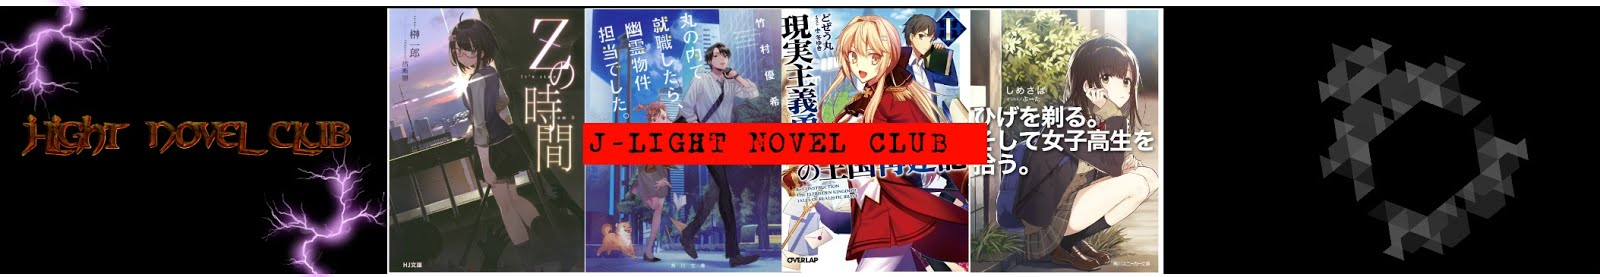 J-LIGHT NOVEL CLUB